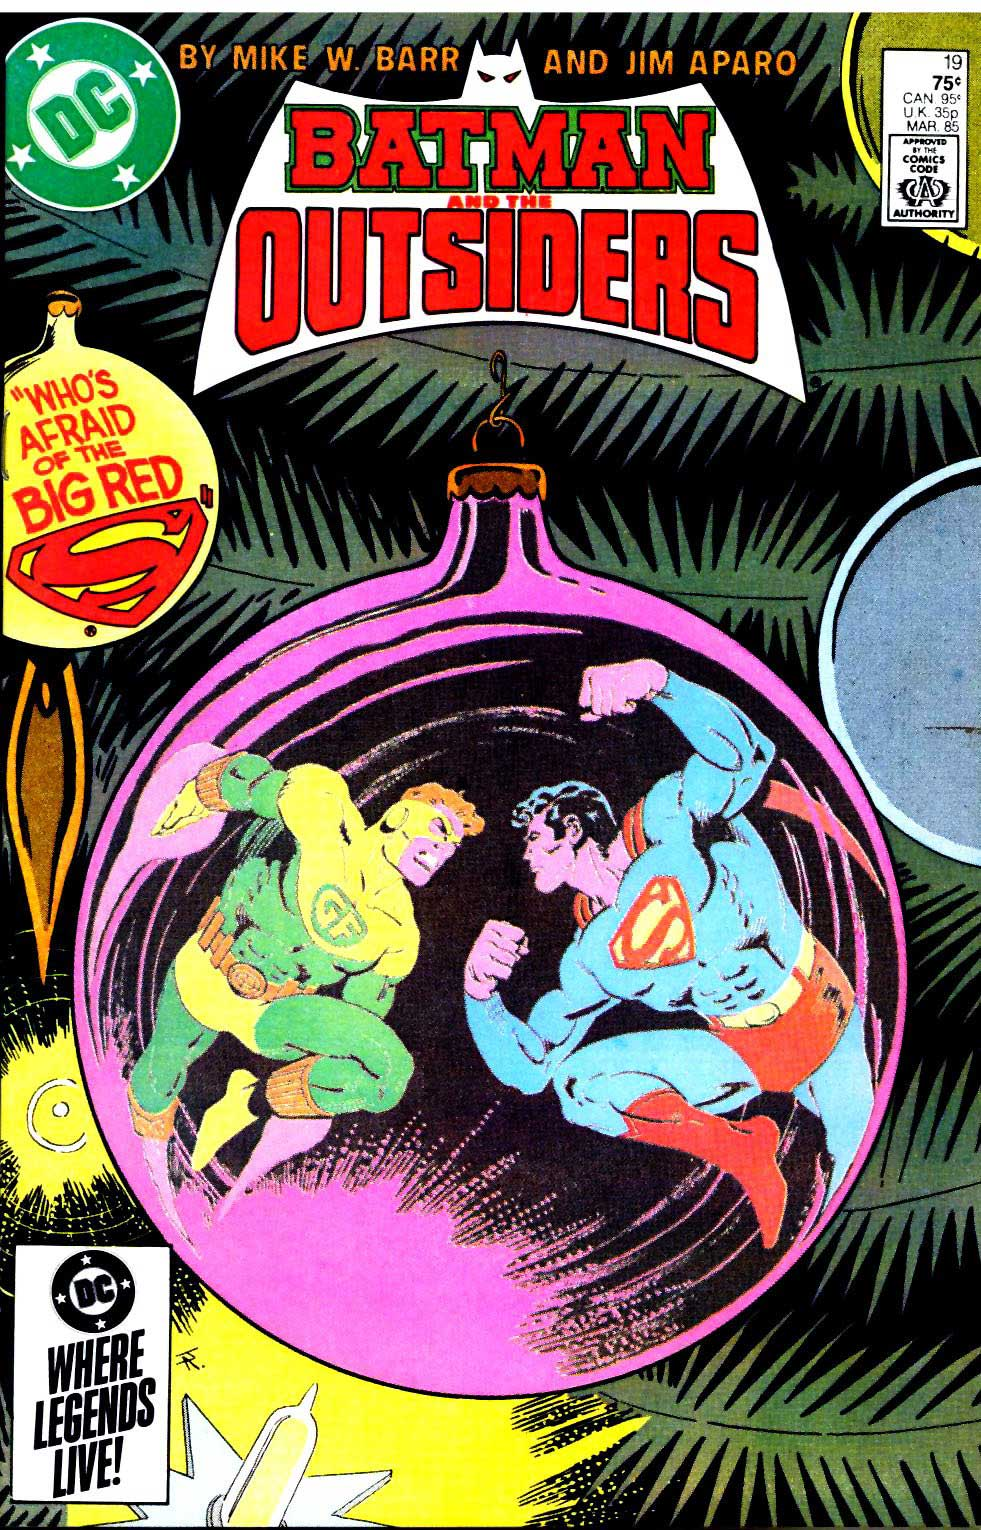 BATMAN AND THE OUTSIDERS #19 by Mike W. Barr and Jim Aparo